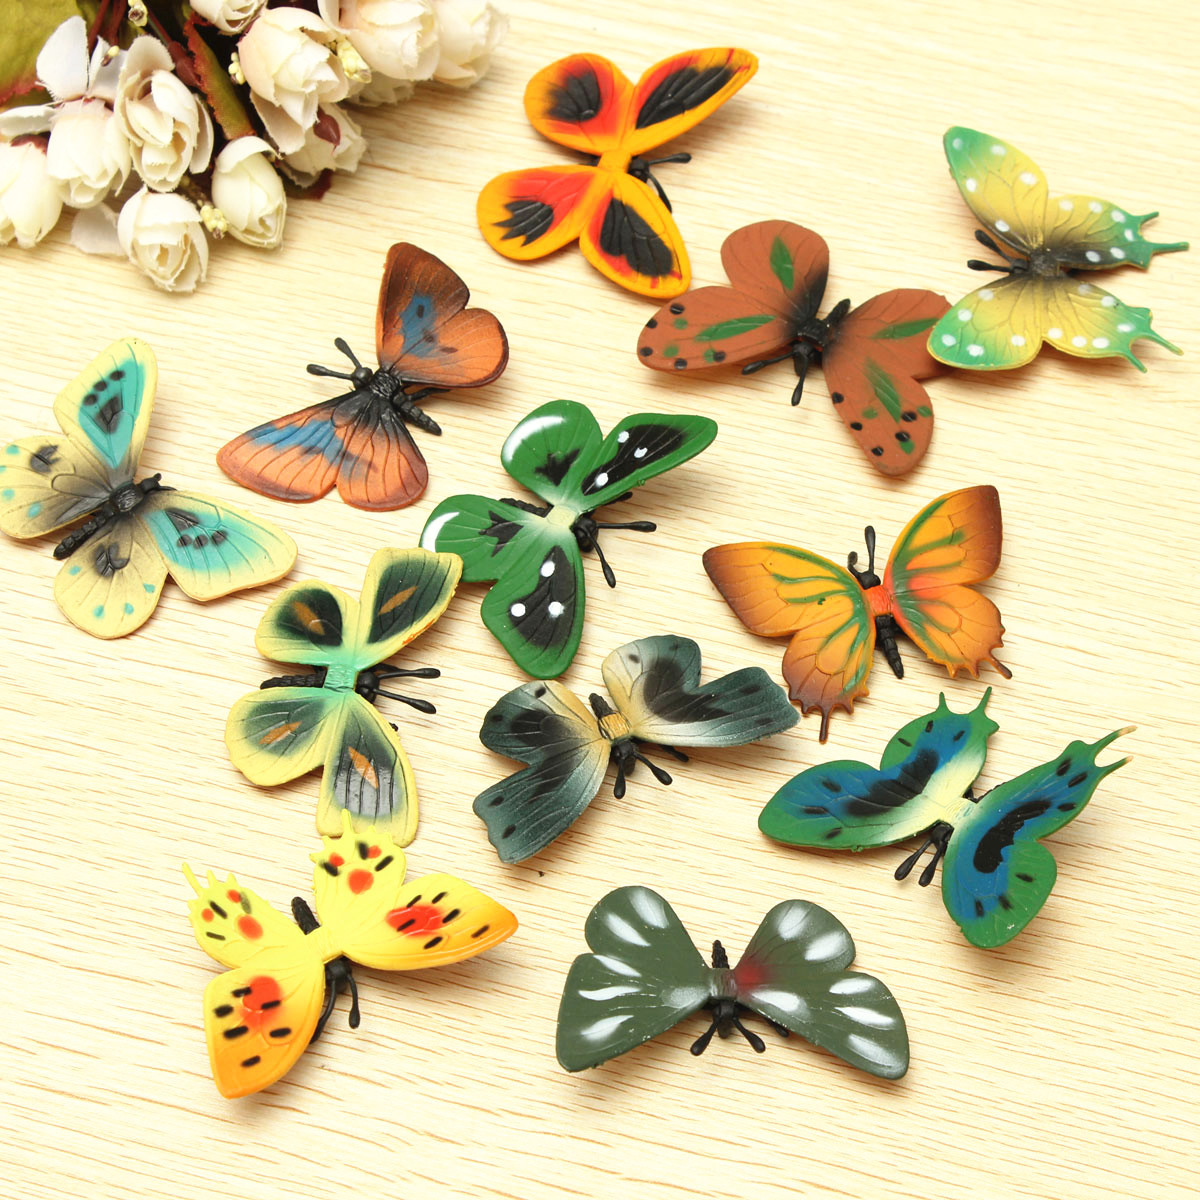 12pcs Plastic Butterfly Colorful Wall Stickers Art Mural Decals Home Wedding Party Decor